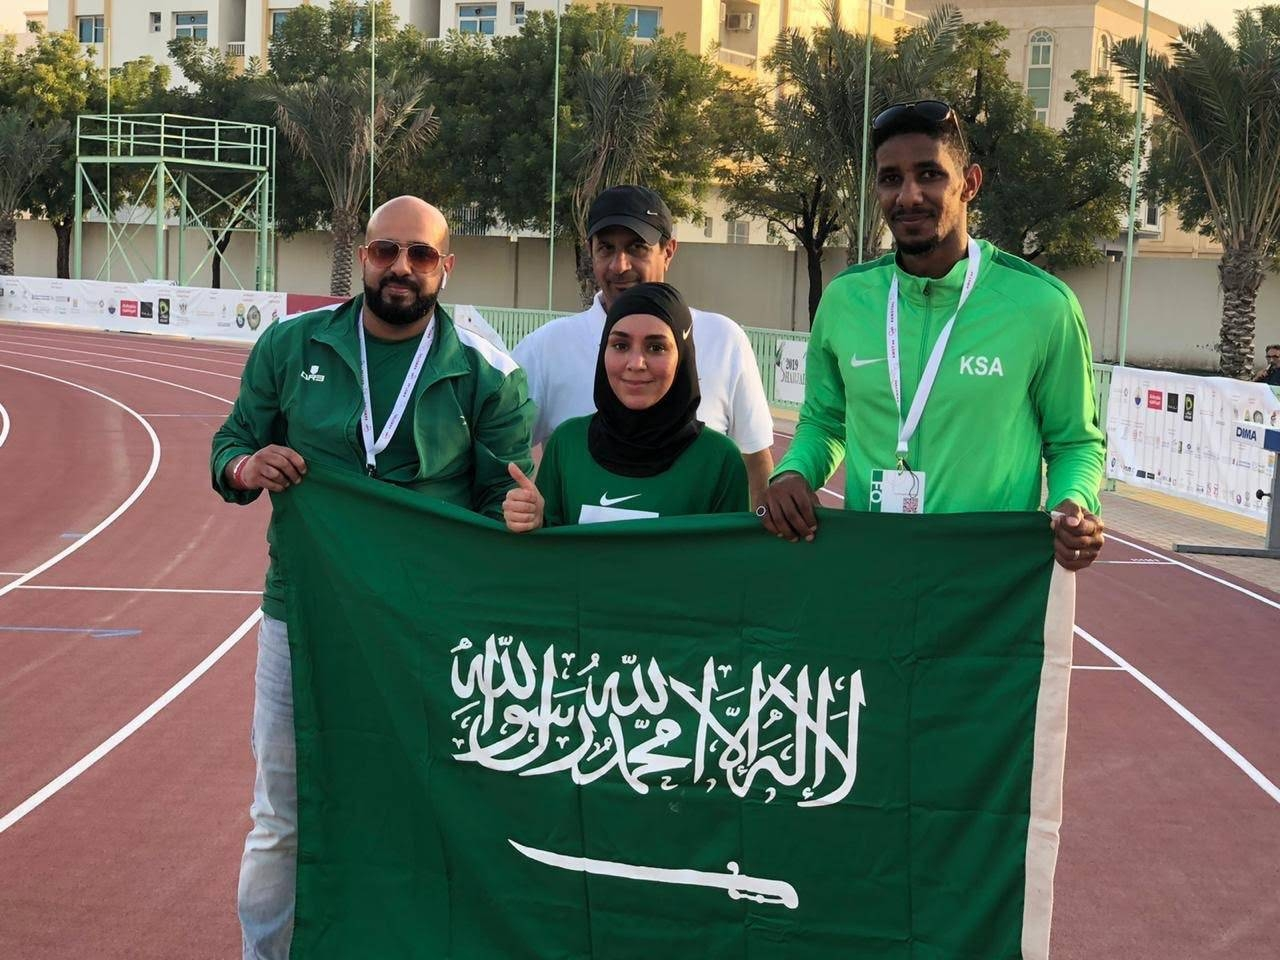 Raghad Al-Suleimani won a silver in the 5000m race.